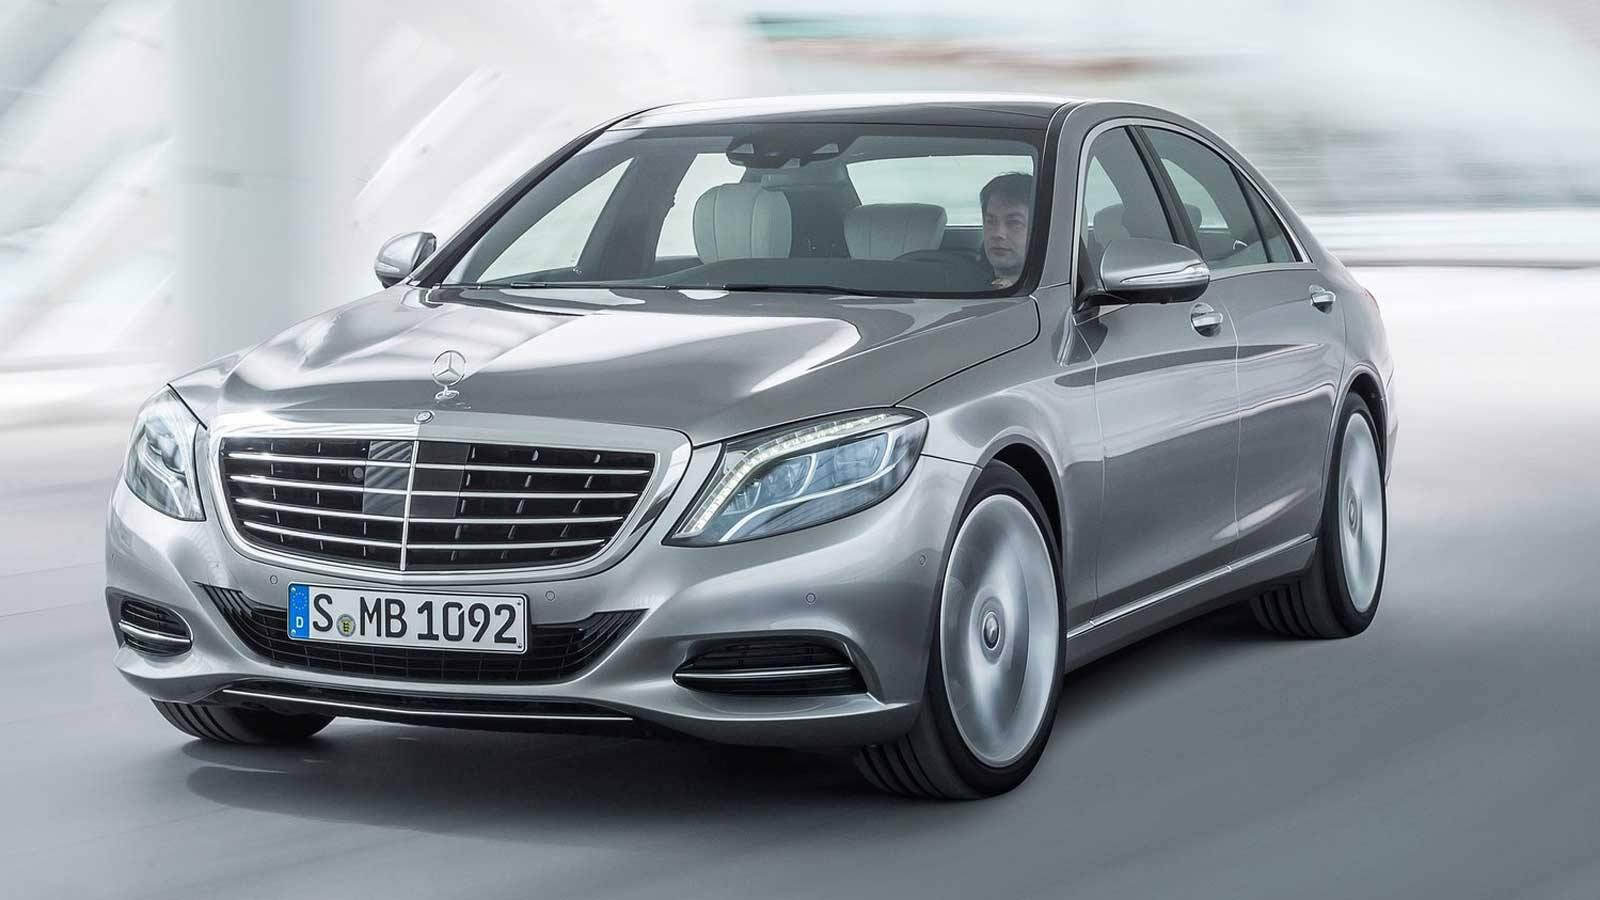 As es el nuevo Mercedes-Benz Clase S